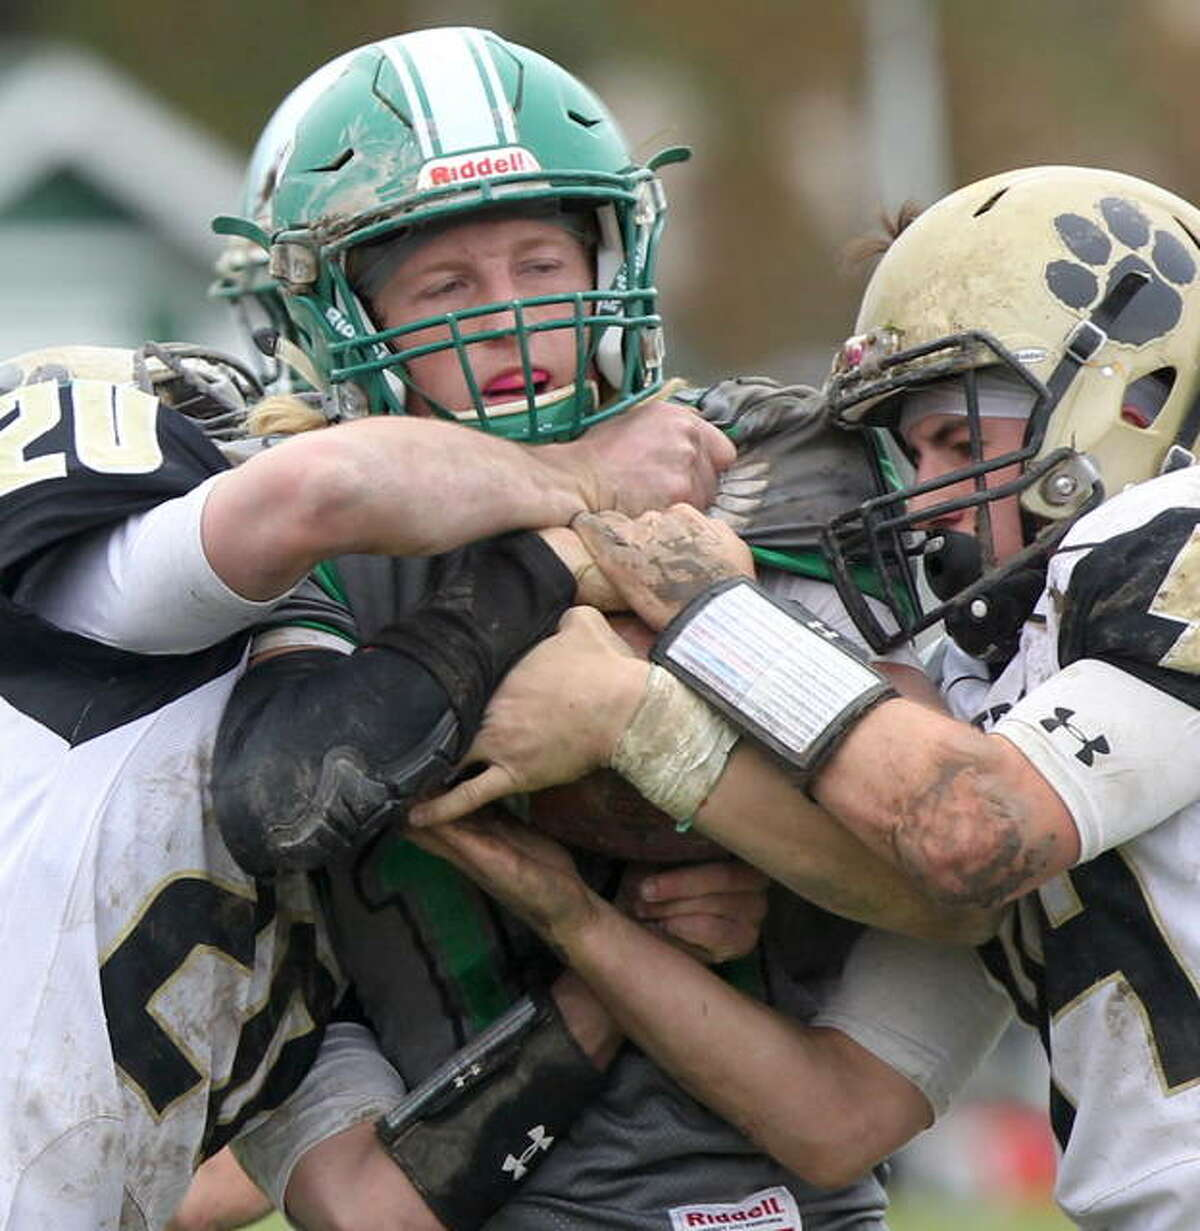 Carrollton quarterback Hunter Flowers hangs onto the ball as two Camp Point Central players try to strip it away in the second round of the IHSA Class 1A playoffs Saturday in Carrollton.